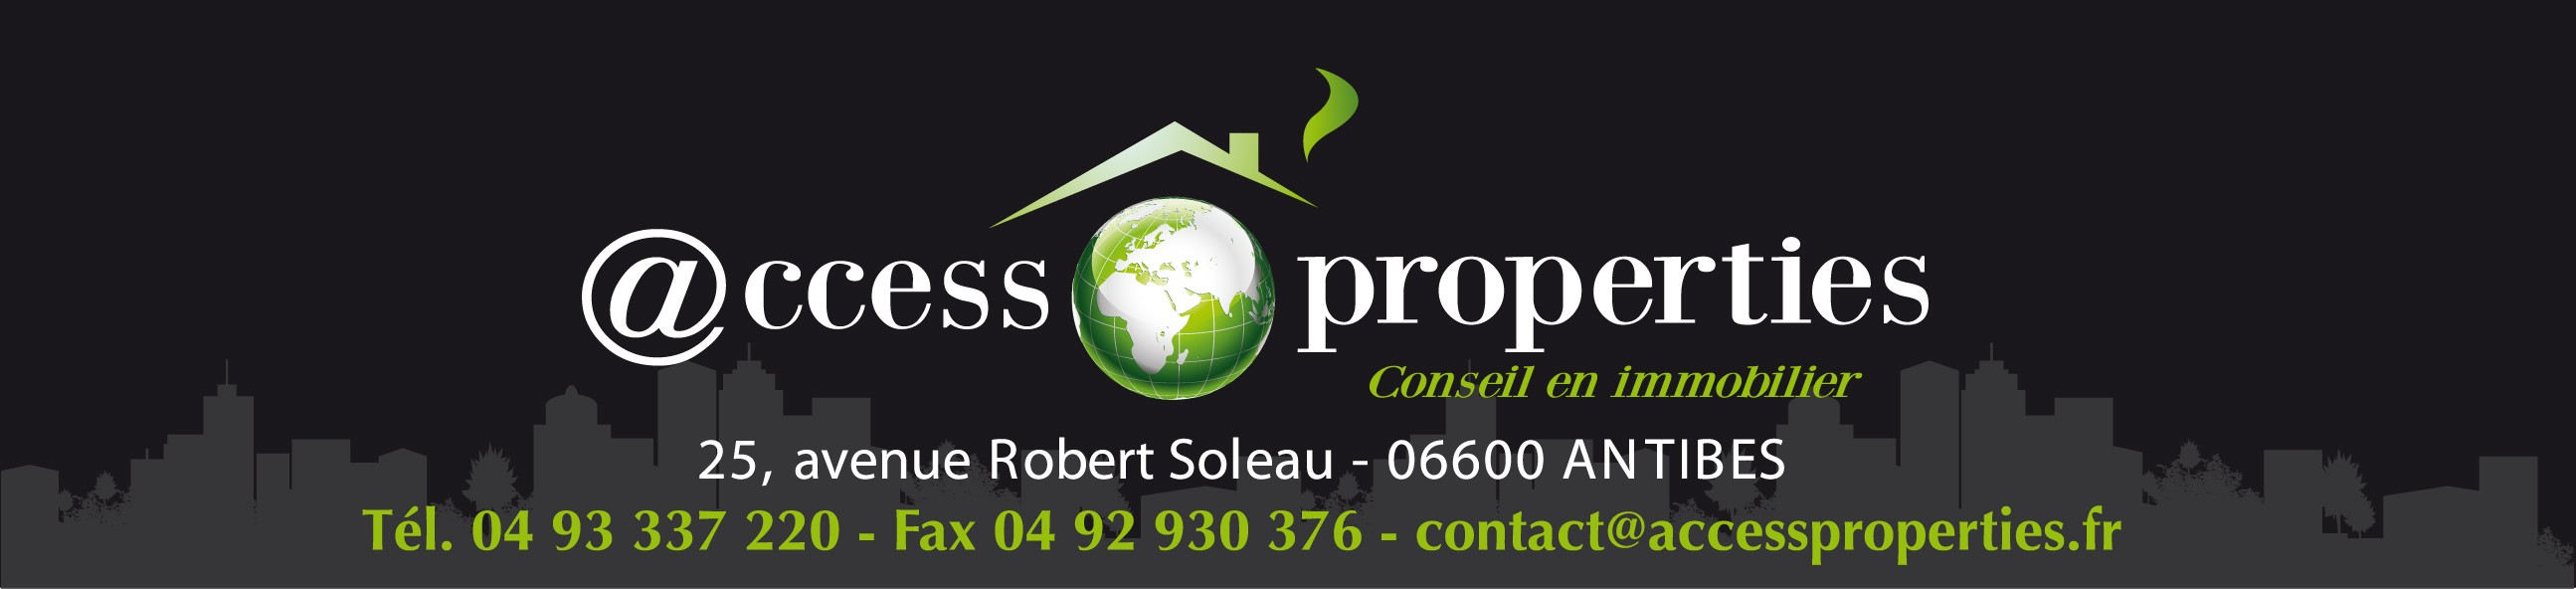 access properties contact